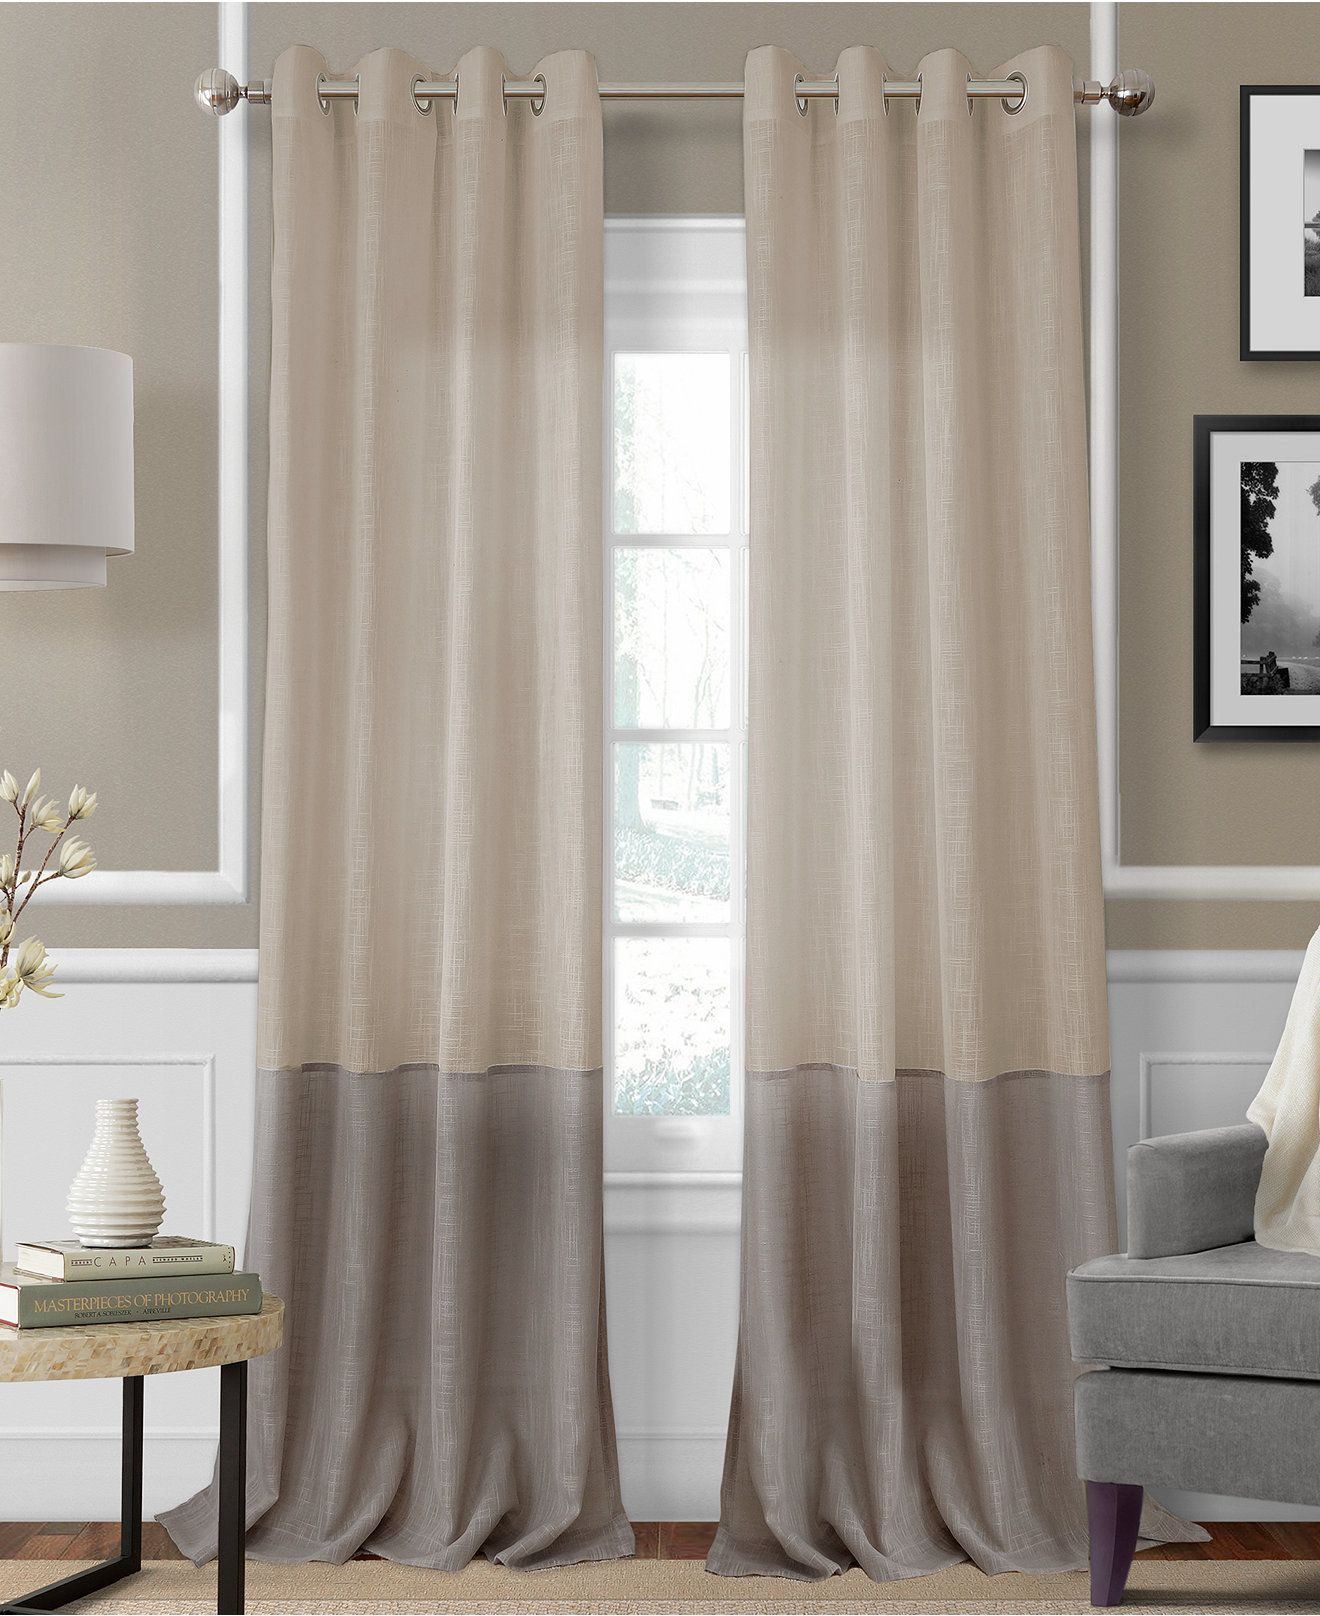 Melody Sheer Colorblocked 52 X 84 Panel Home Curtains Remodel